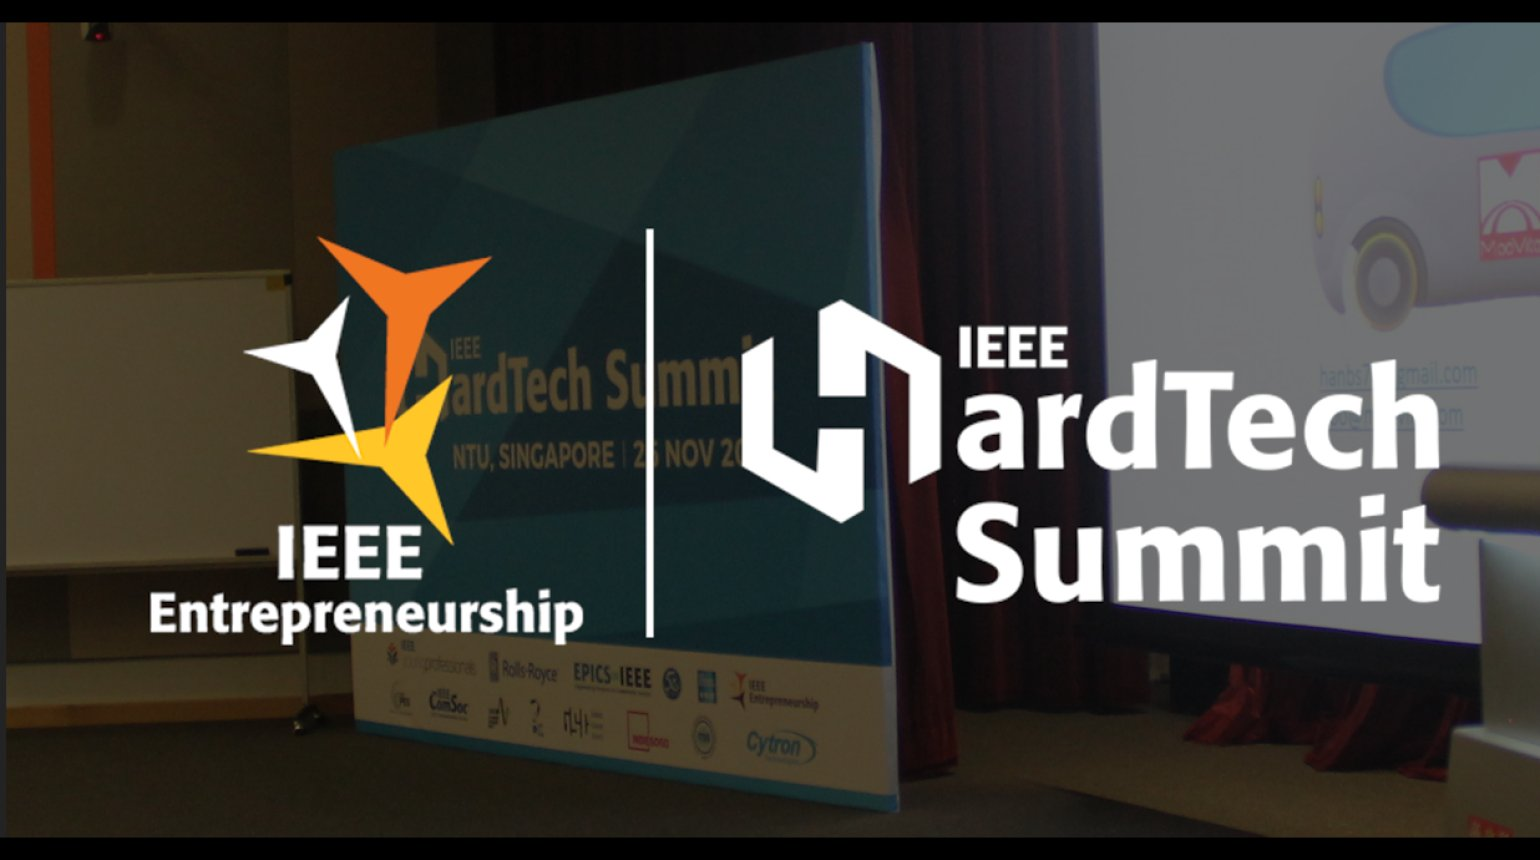 IEEE HardTech Summit 2016: Sustainable Alternate Lighting Technology (SALT)